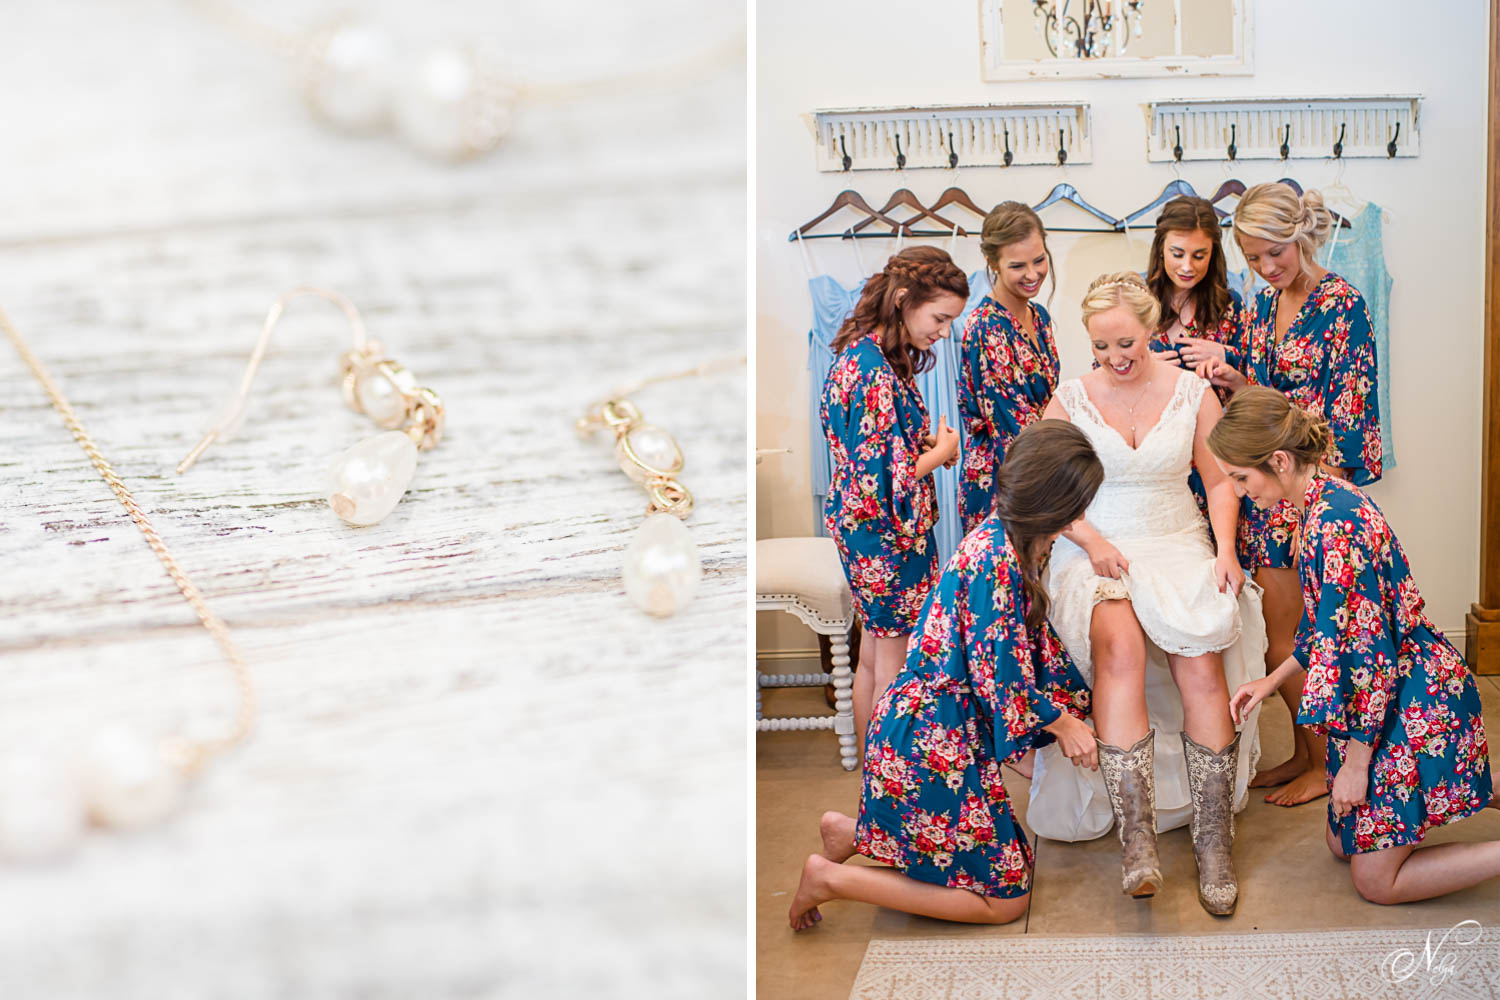 bridesmaids in cute navy floral robes helping put cowboy boots on bride